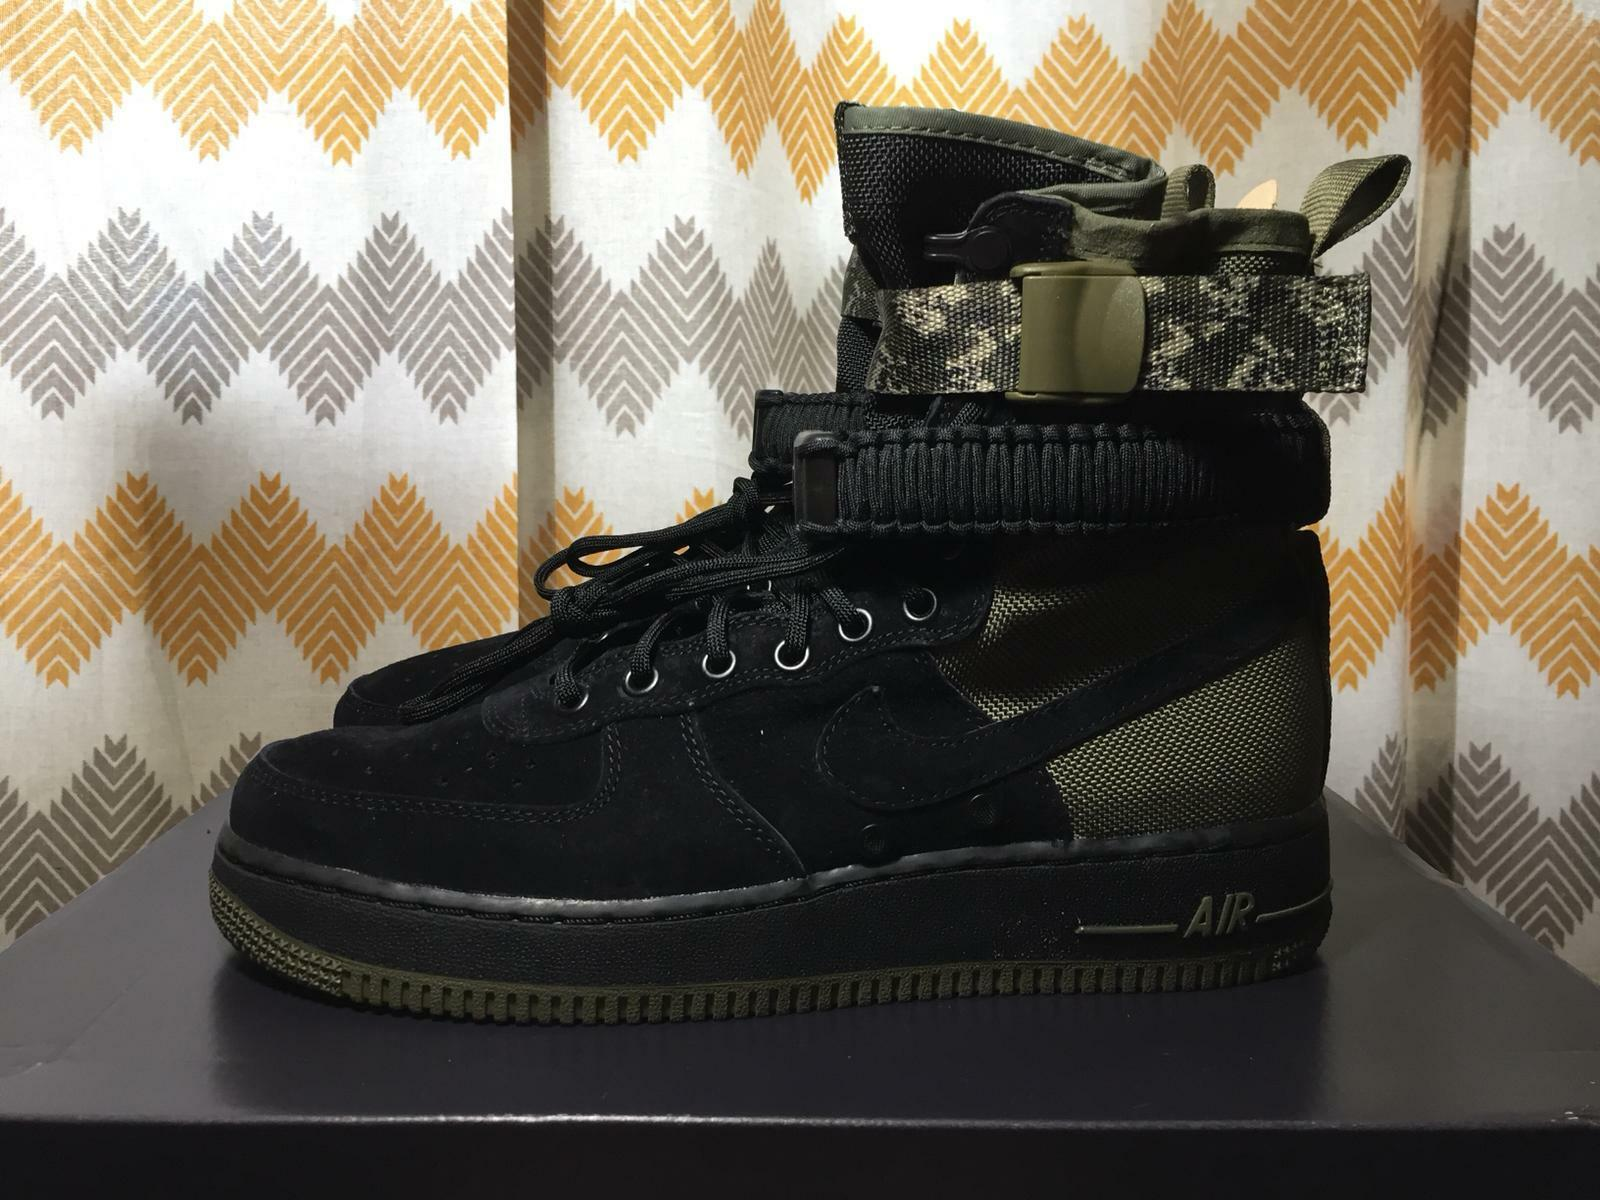 Nike SF Air Force 1 shoes Black Olive Camo Men SIZE 8